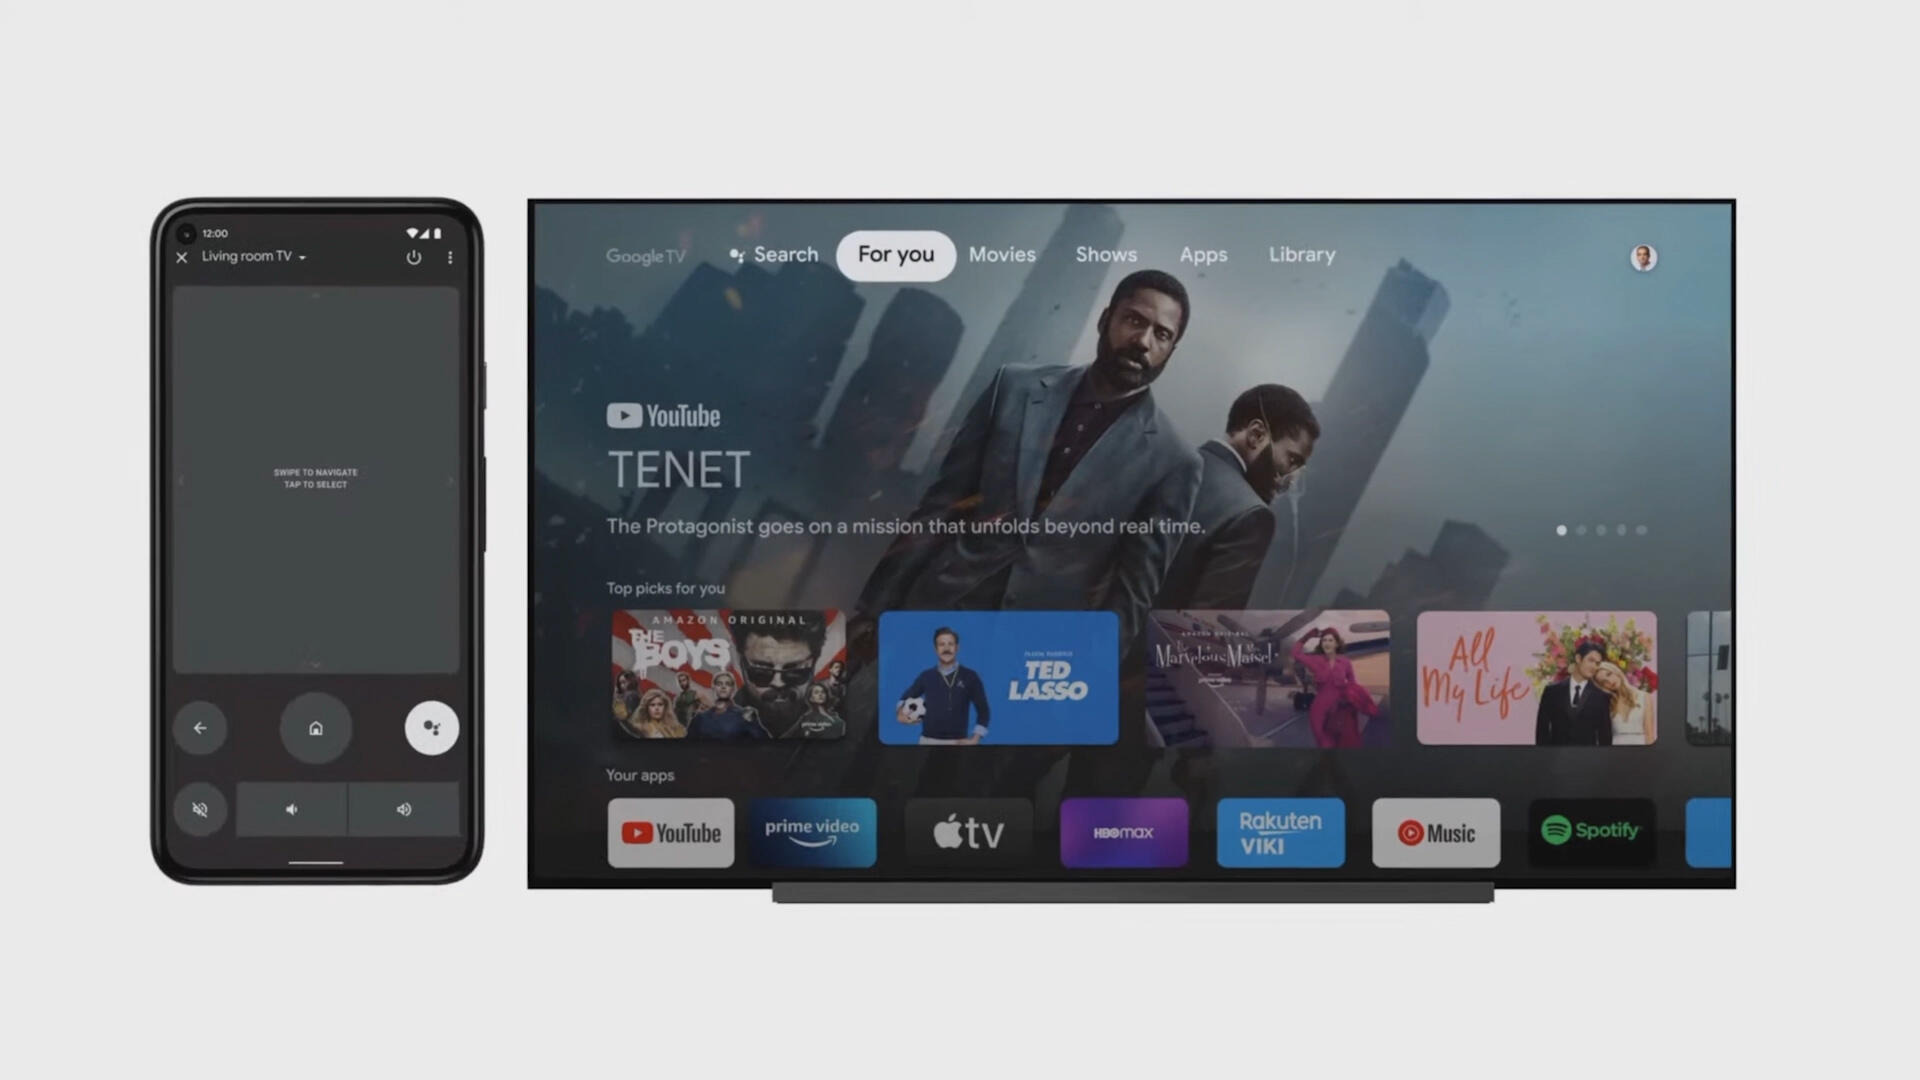 Video: Google turns Android 12 into a TV remote